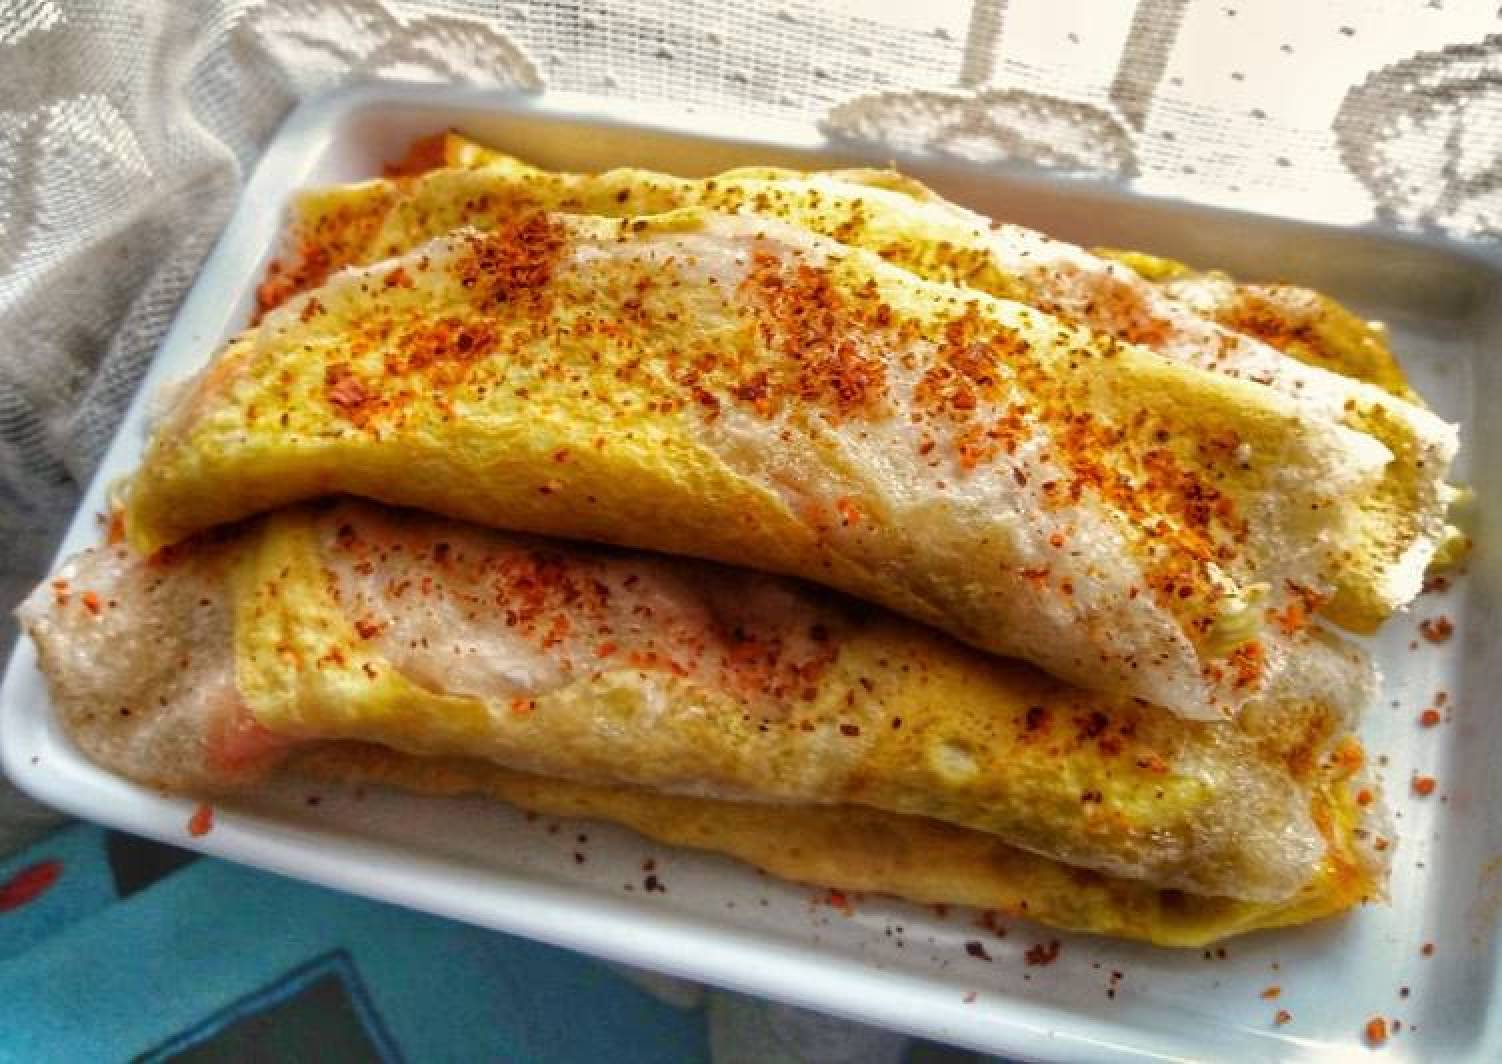 Cilung Isi Mie / Tapioca and Egg Omelette With Noodle